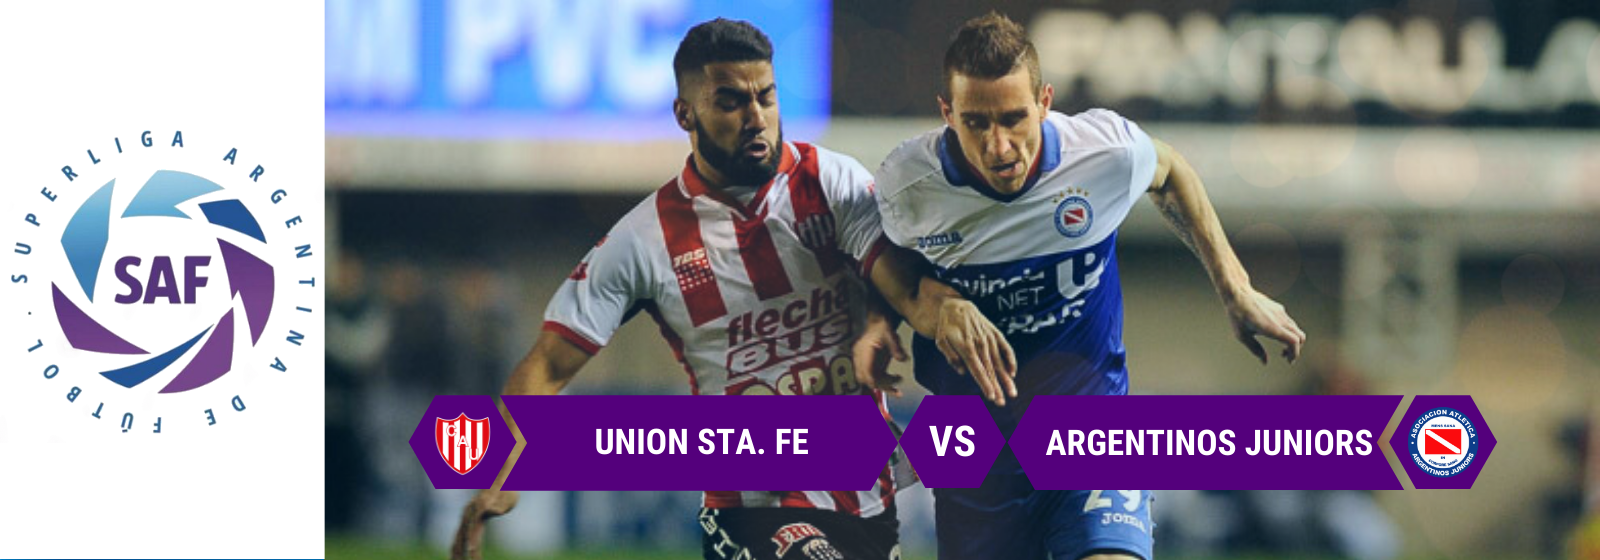 Asianconnect: Union vs Argentinos Jrs Odds for January 24, 2020